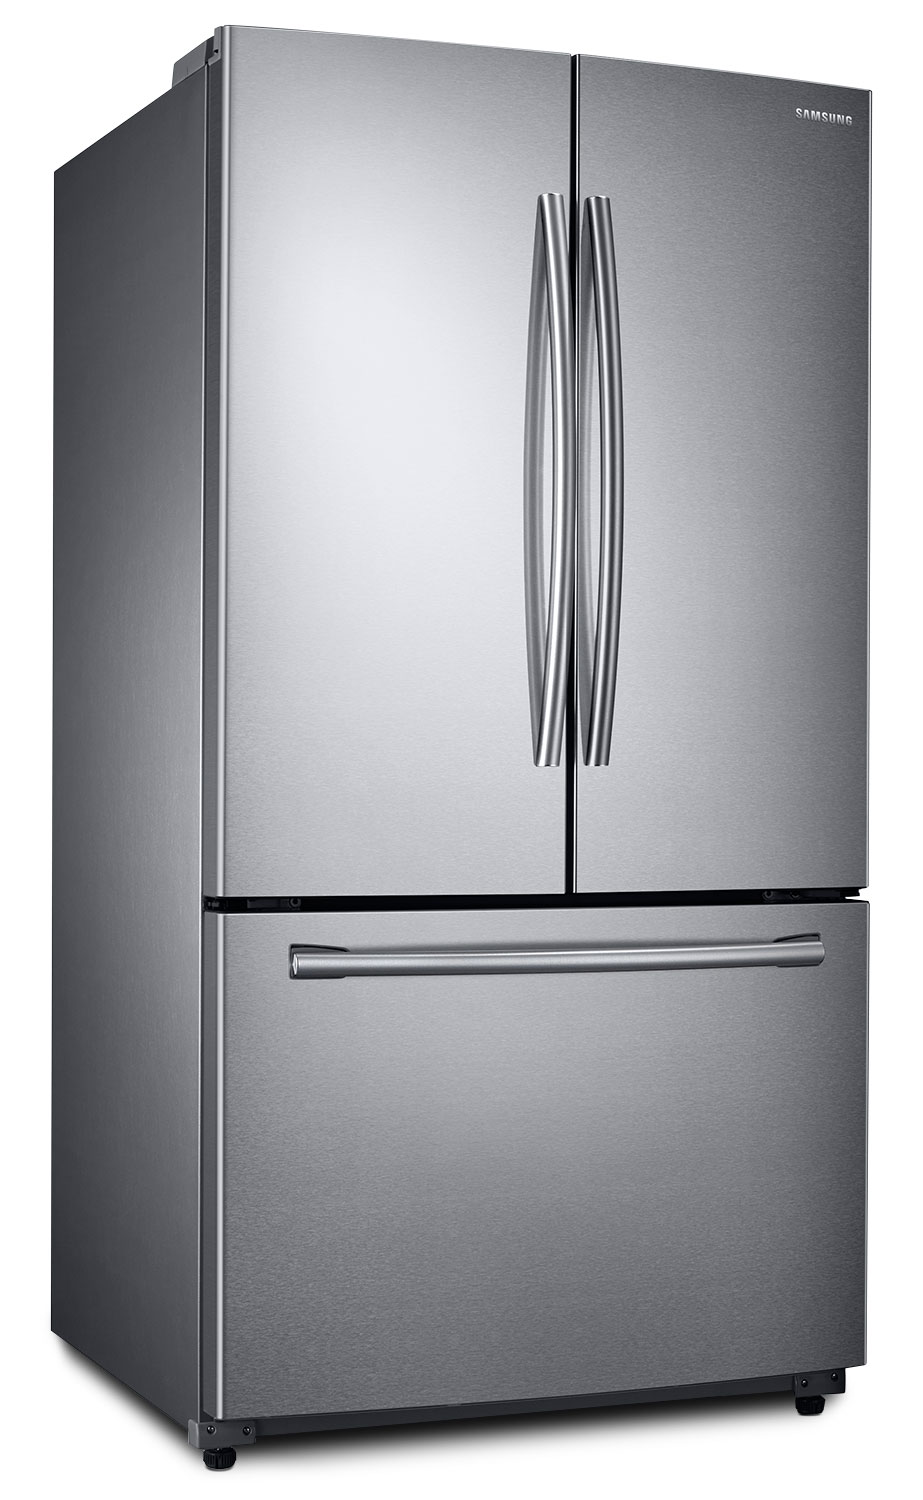 High End Fridges Samsung Stainless Steel French Door Refrigerator 255 Cu Ft